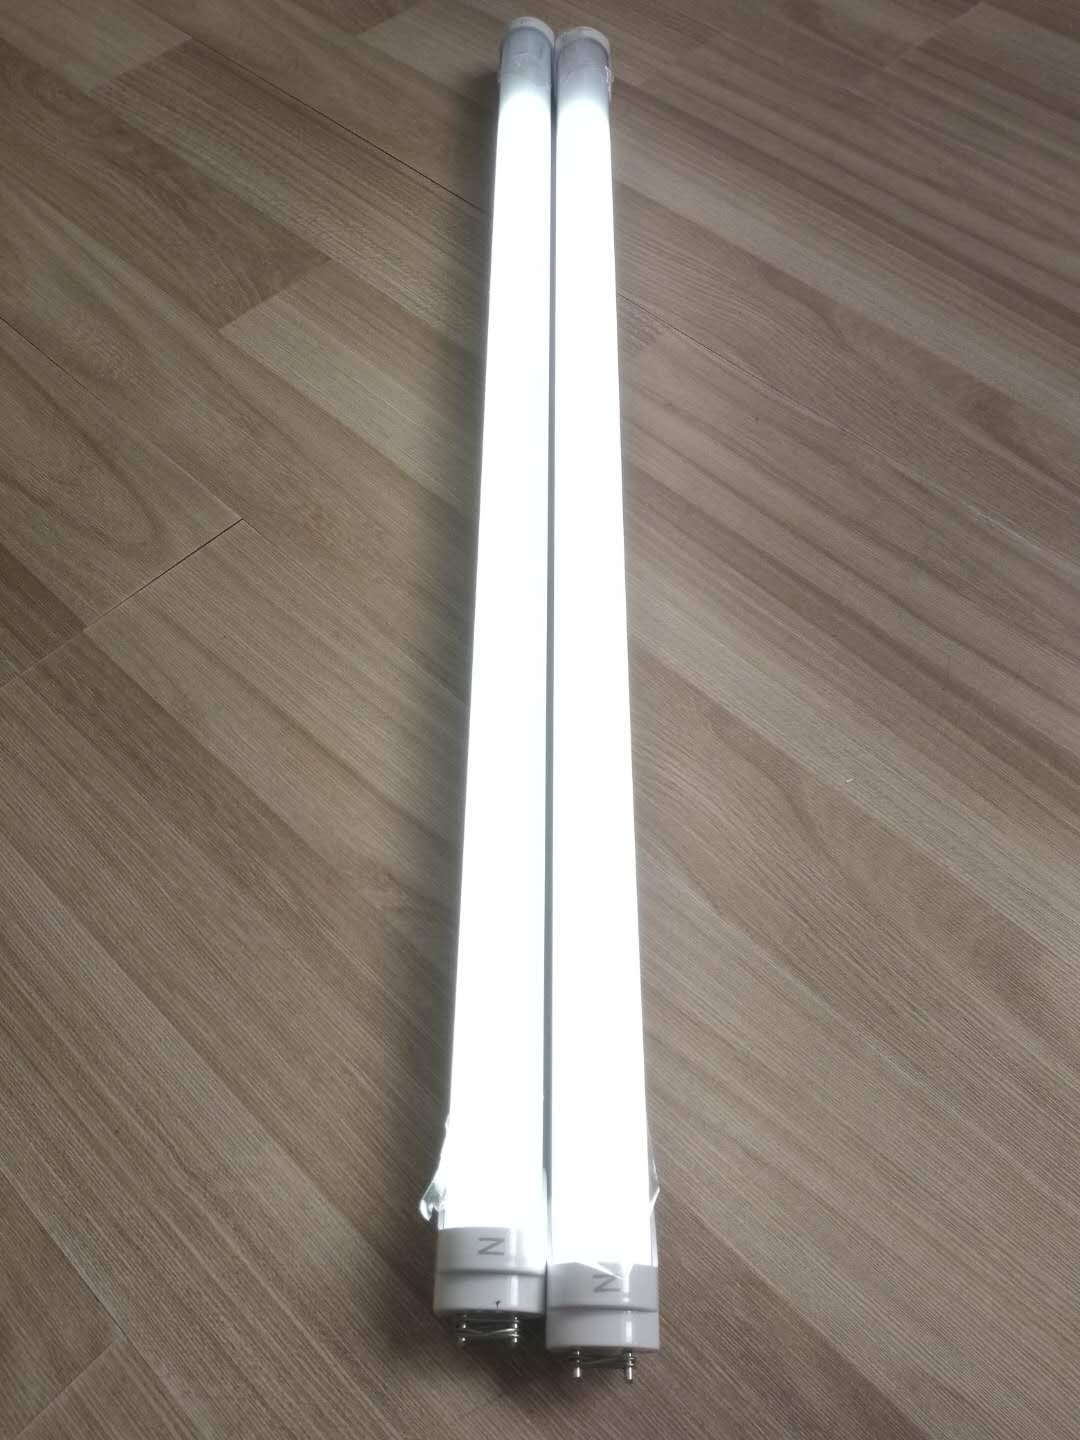 3 hours led emergency tube